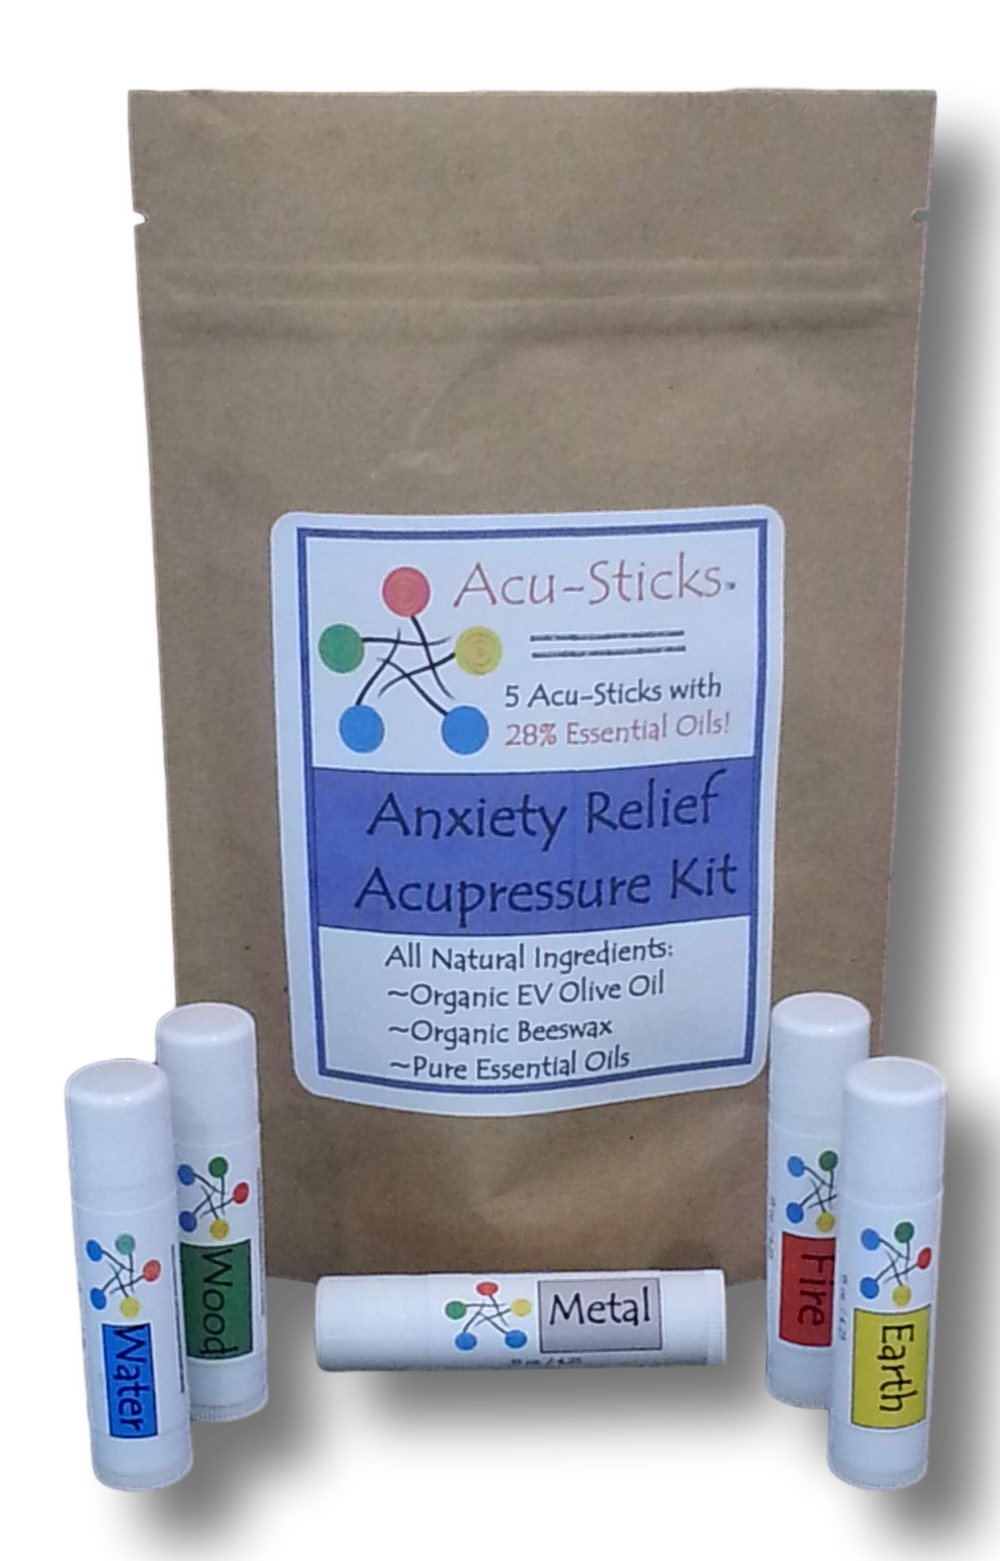 acupressure kit for anxiety with essential oils